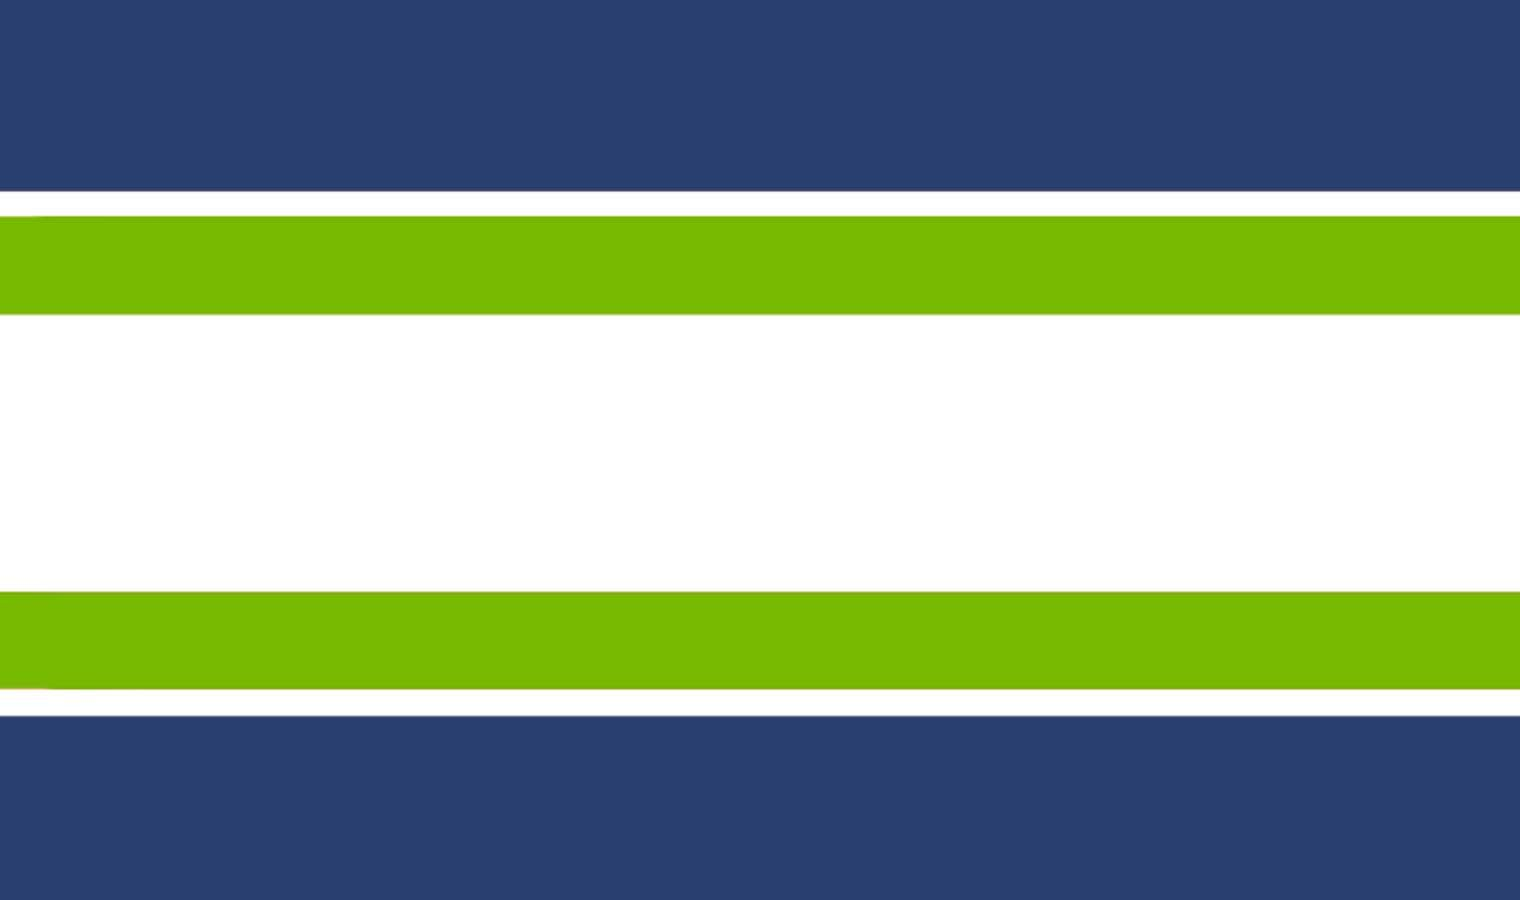 Seattle Seahawks NFL Team Color Wallpaper Border Nfl